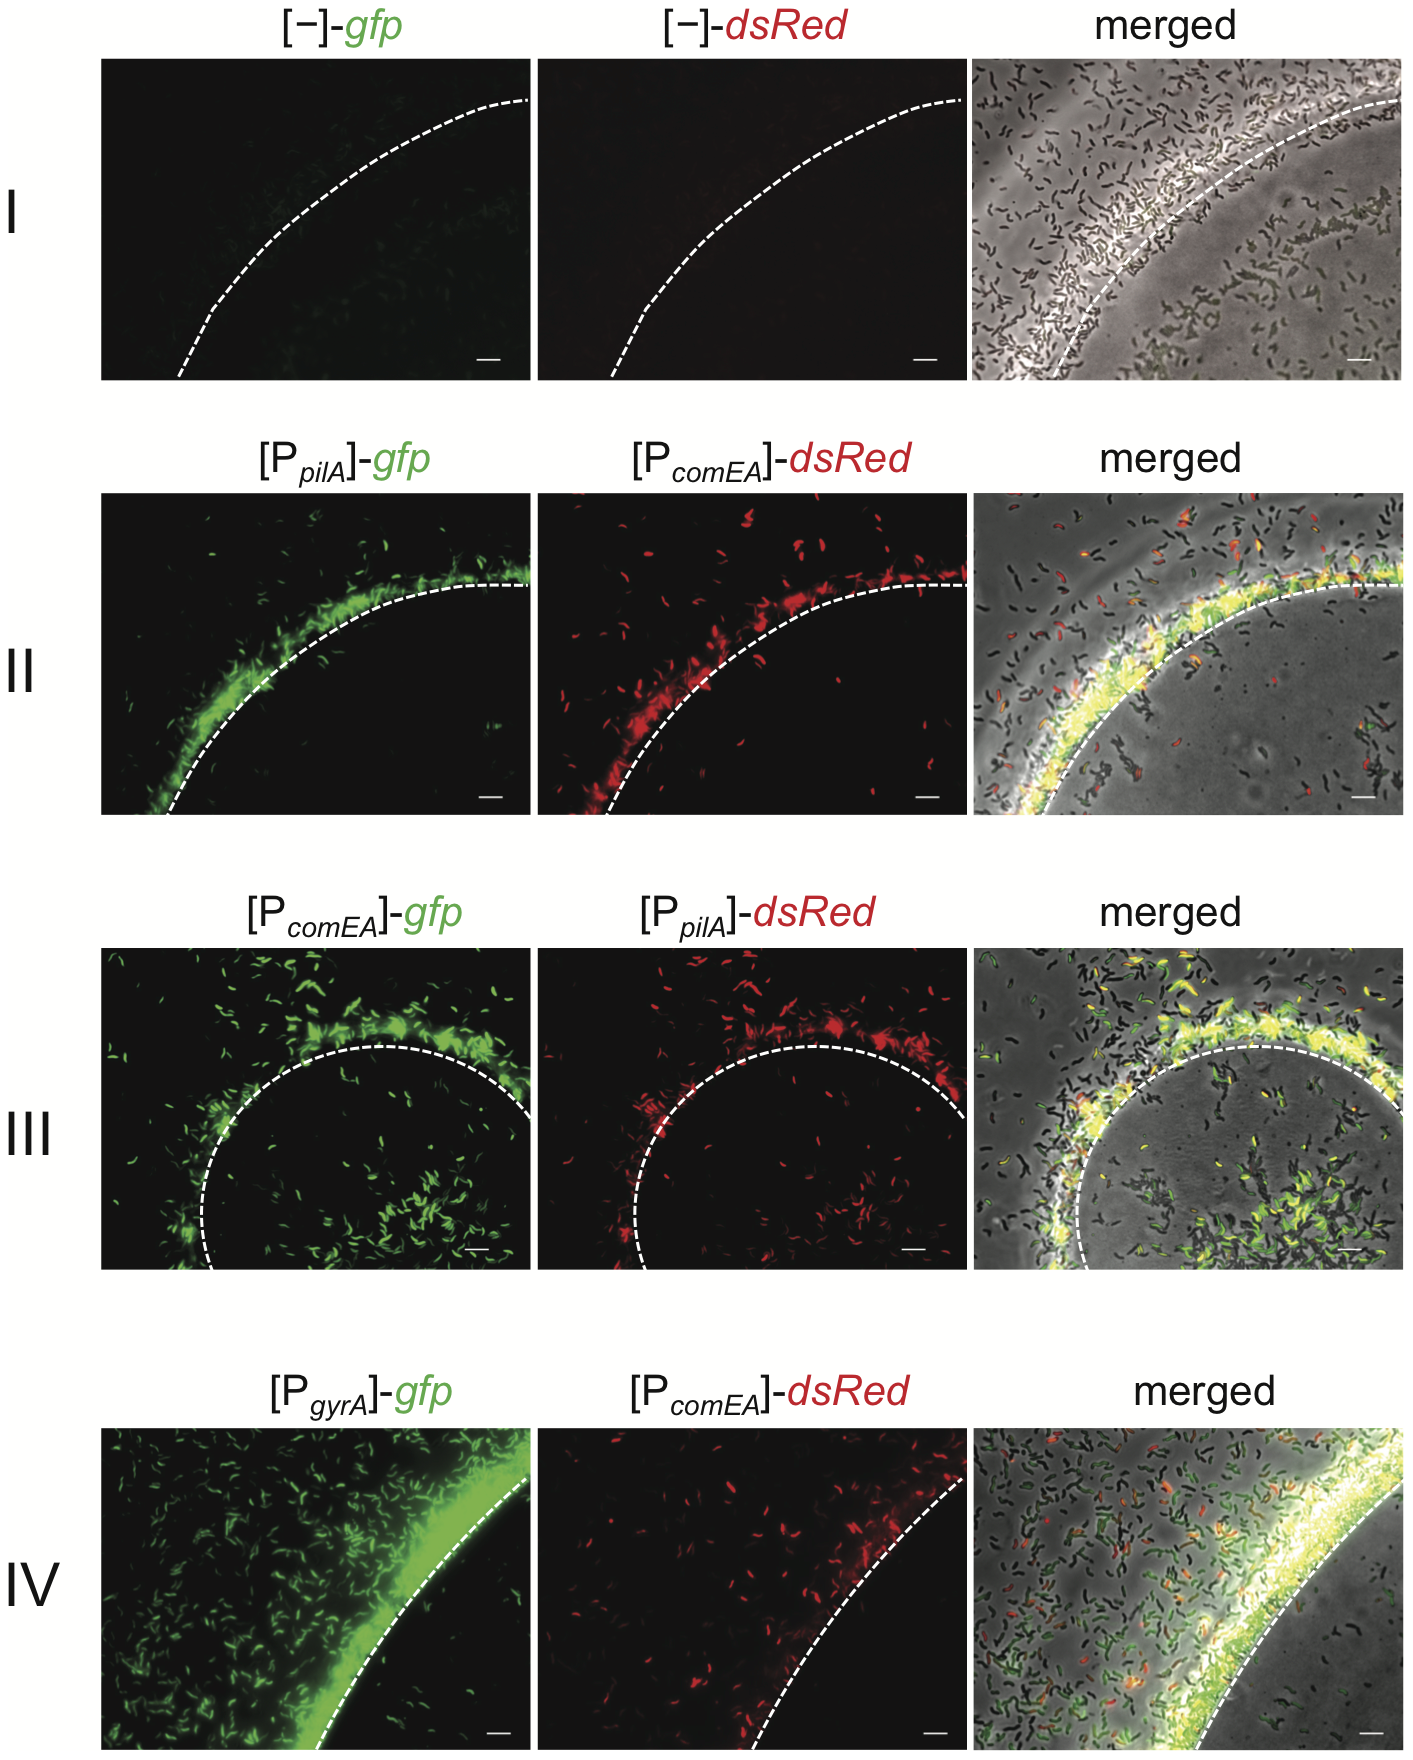 Visualization of competence gene expression on chitin surfaces.